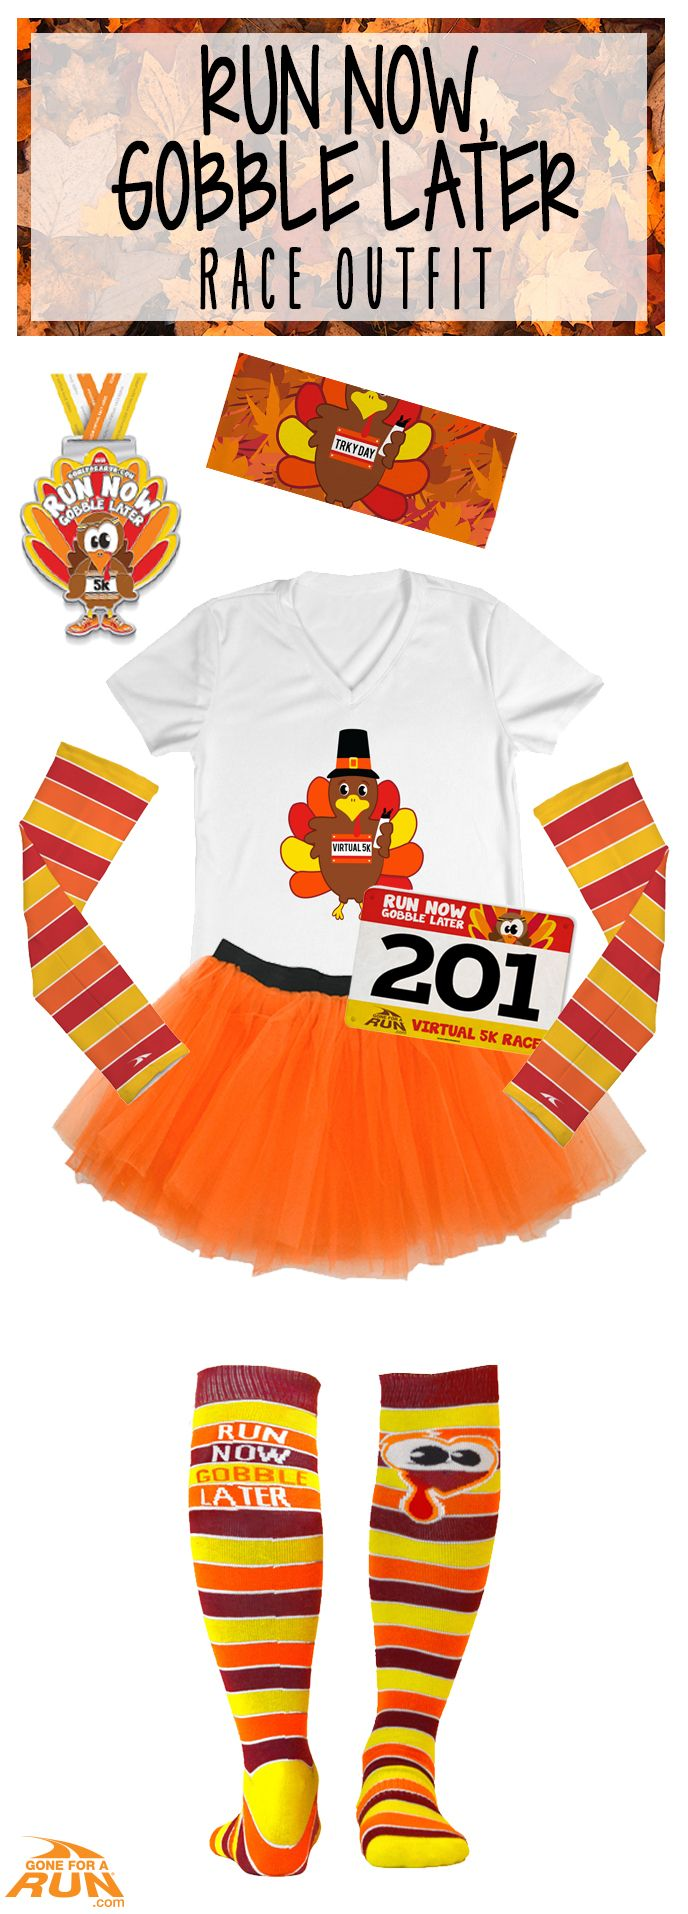 Run off some calories before your #Thanksgiving gobble-fest in our Run Now Gobble Later Virtual #5K! Add some fun elements to your race packet, and make the best Turkey Day running outfit ever!